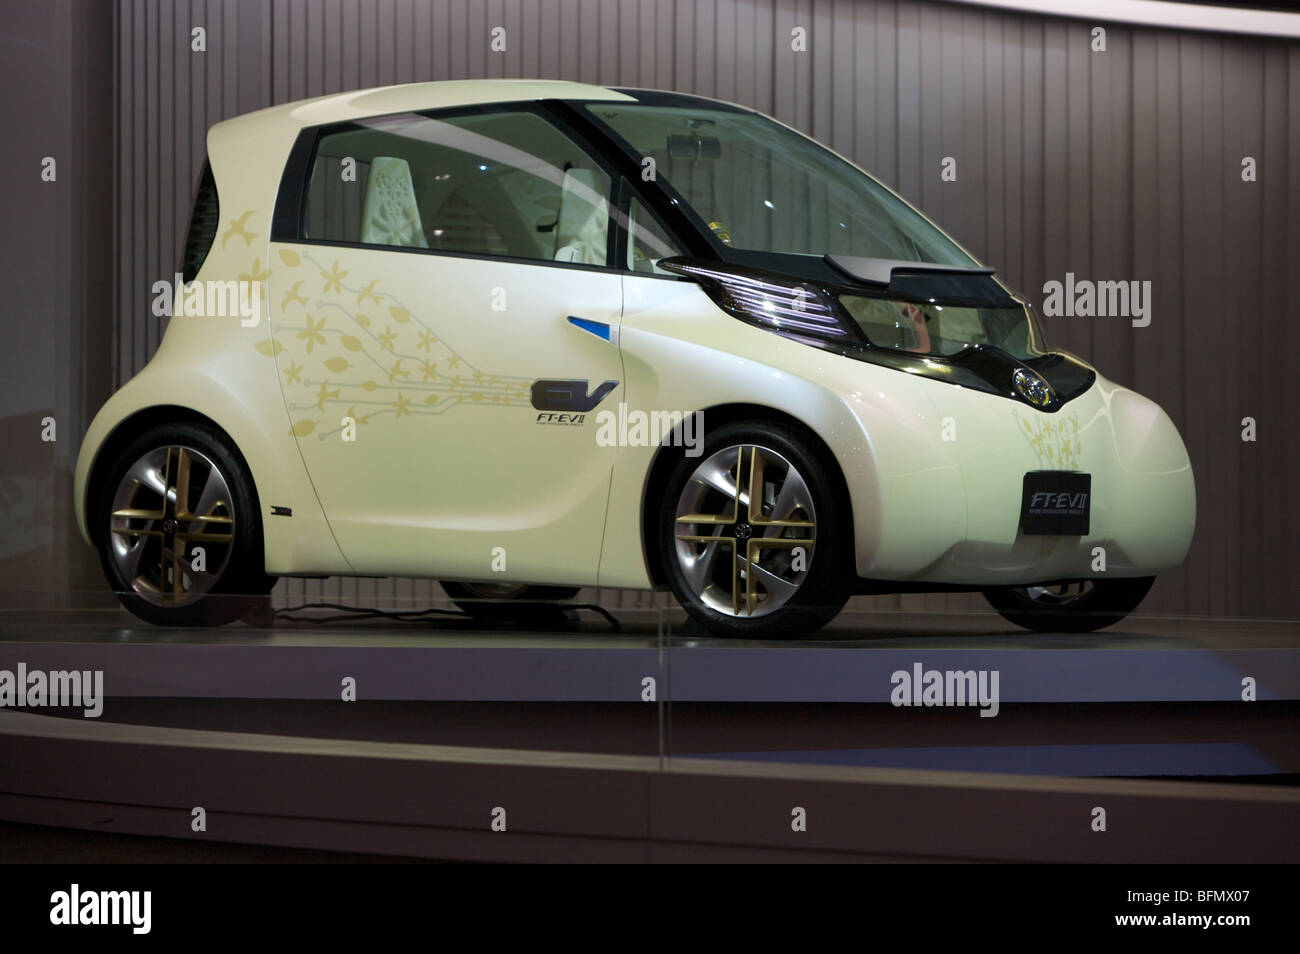 Toyota's FT-EV II concept car displayed at the 2009 Tokyo motorshow. - Stock Image